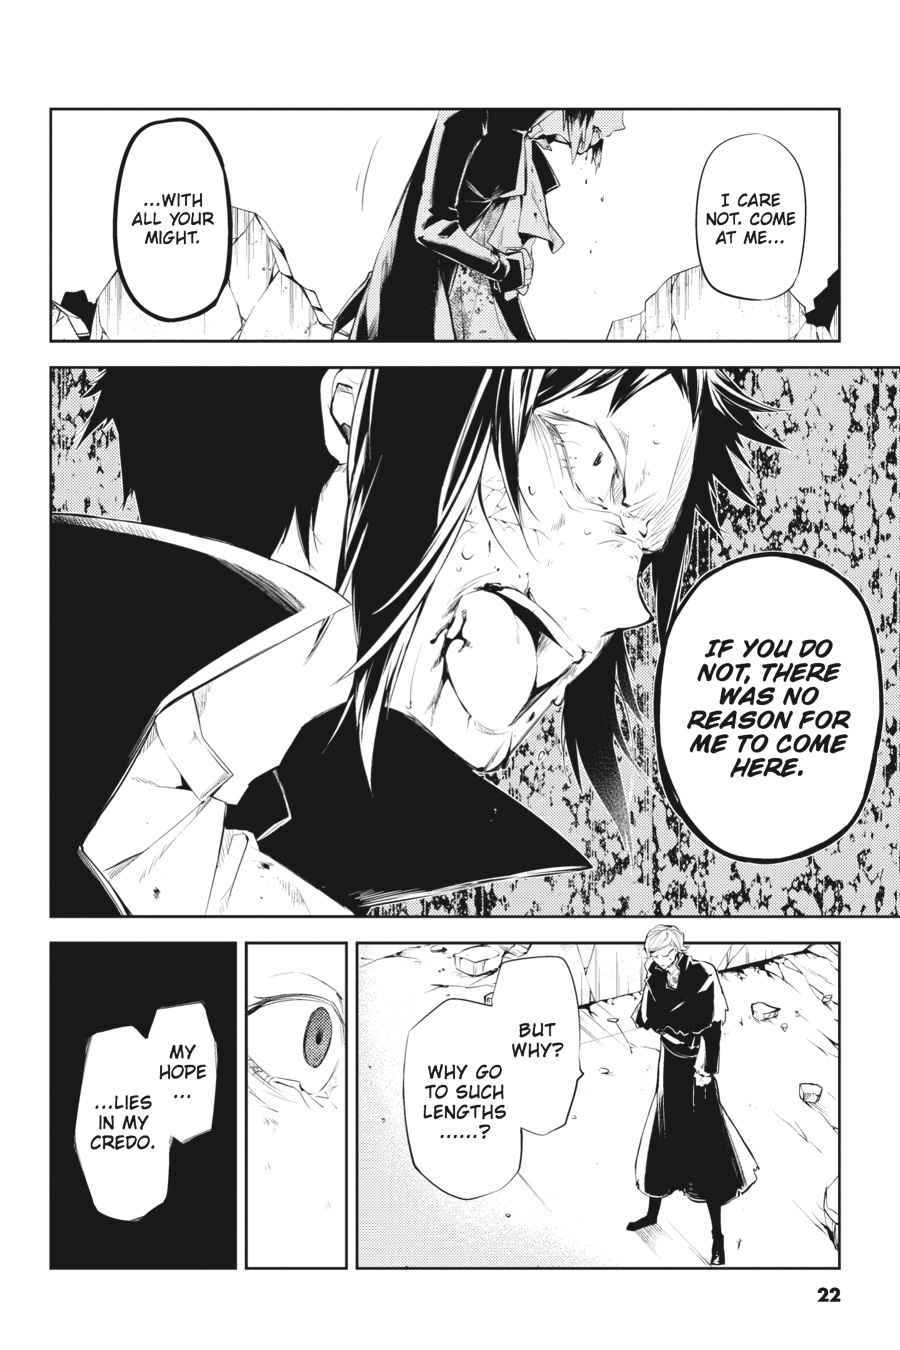 Bungou Stray Dogs Chapter 21 Page 22